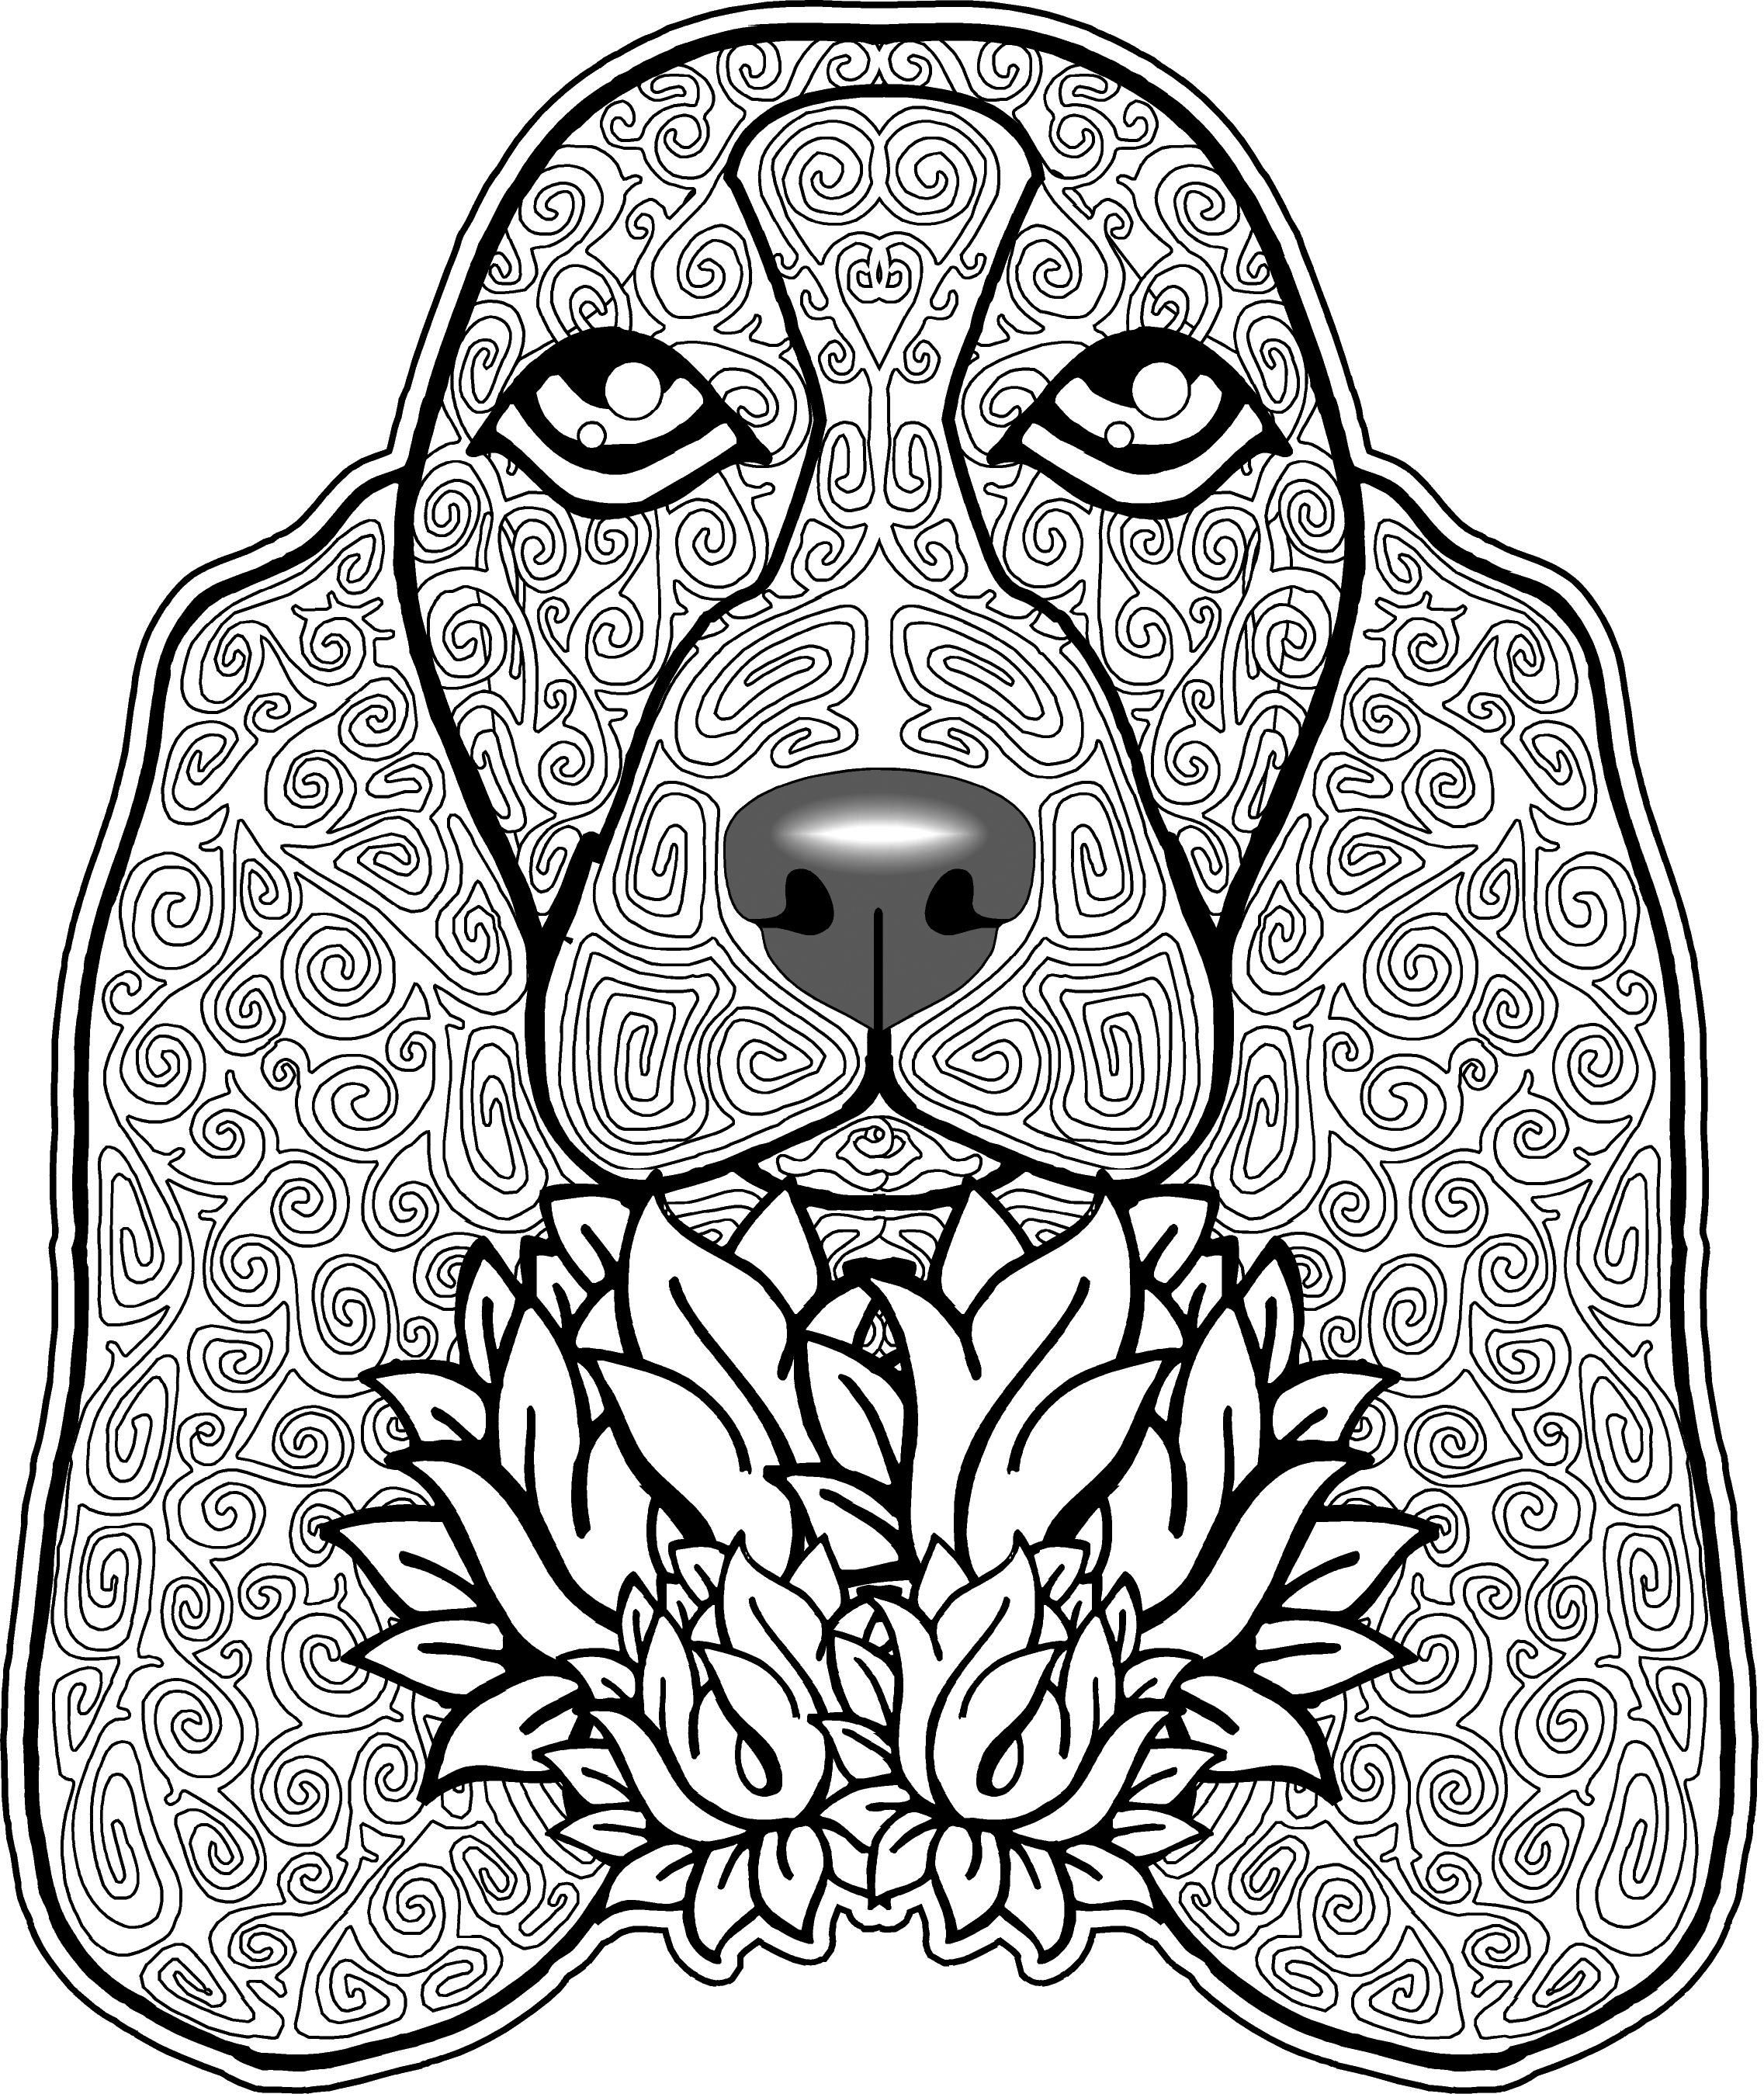 2273x2698 Dog Coloring Page, Dog Coloring Pages, Free Coloring Page, Free